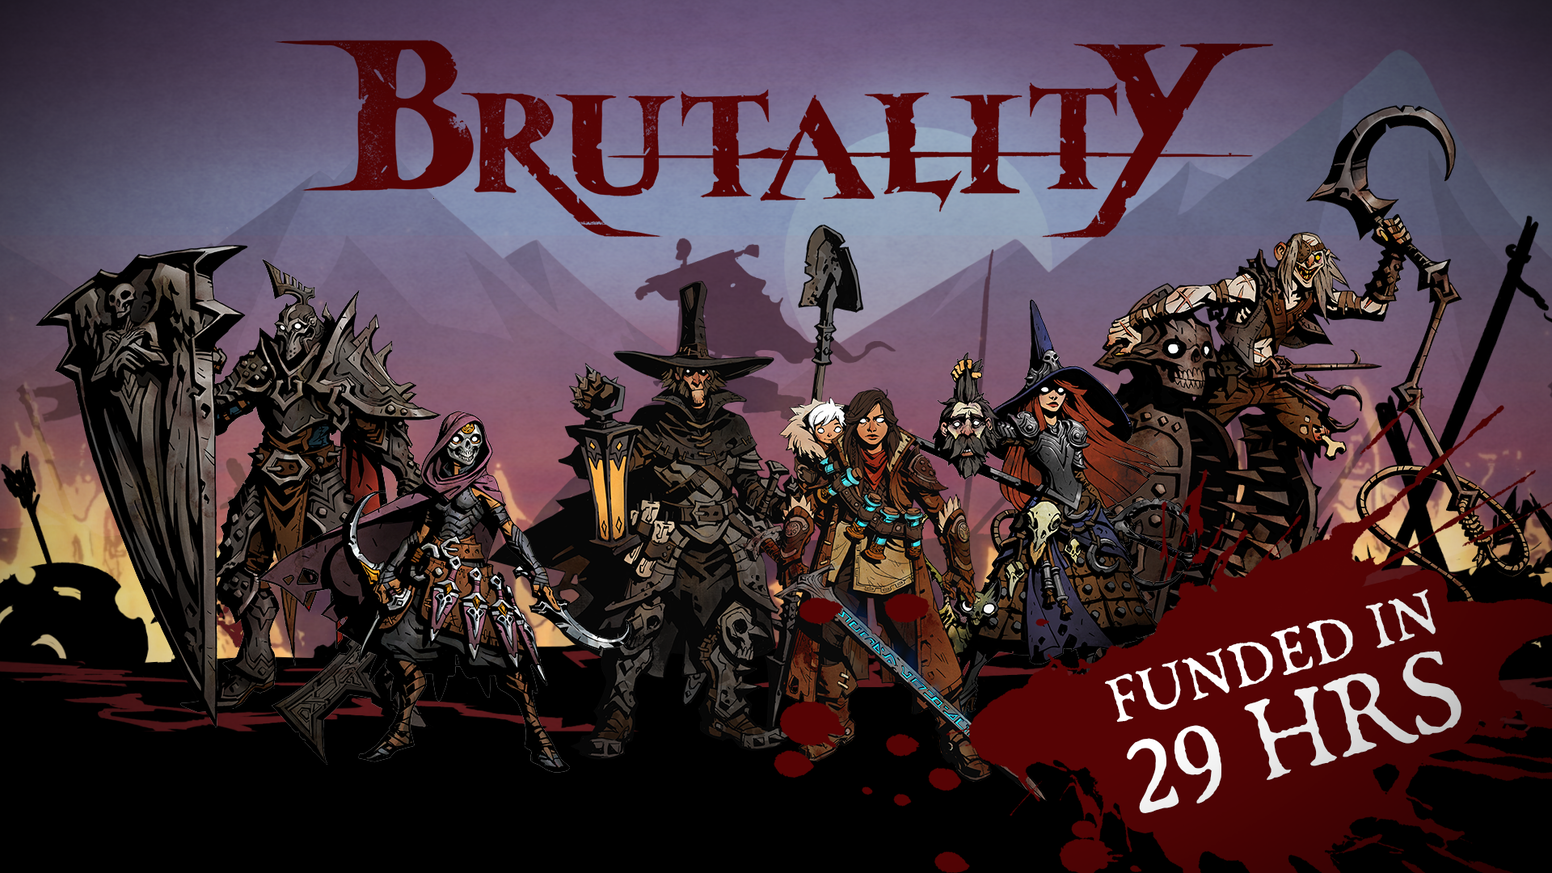 Brutality is a medieval combat brawler board game for 2-4 players. Pick 2 heroes and go to war against 2 bloodthirsty rivals.